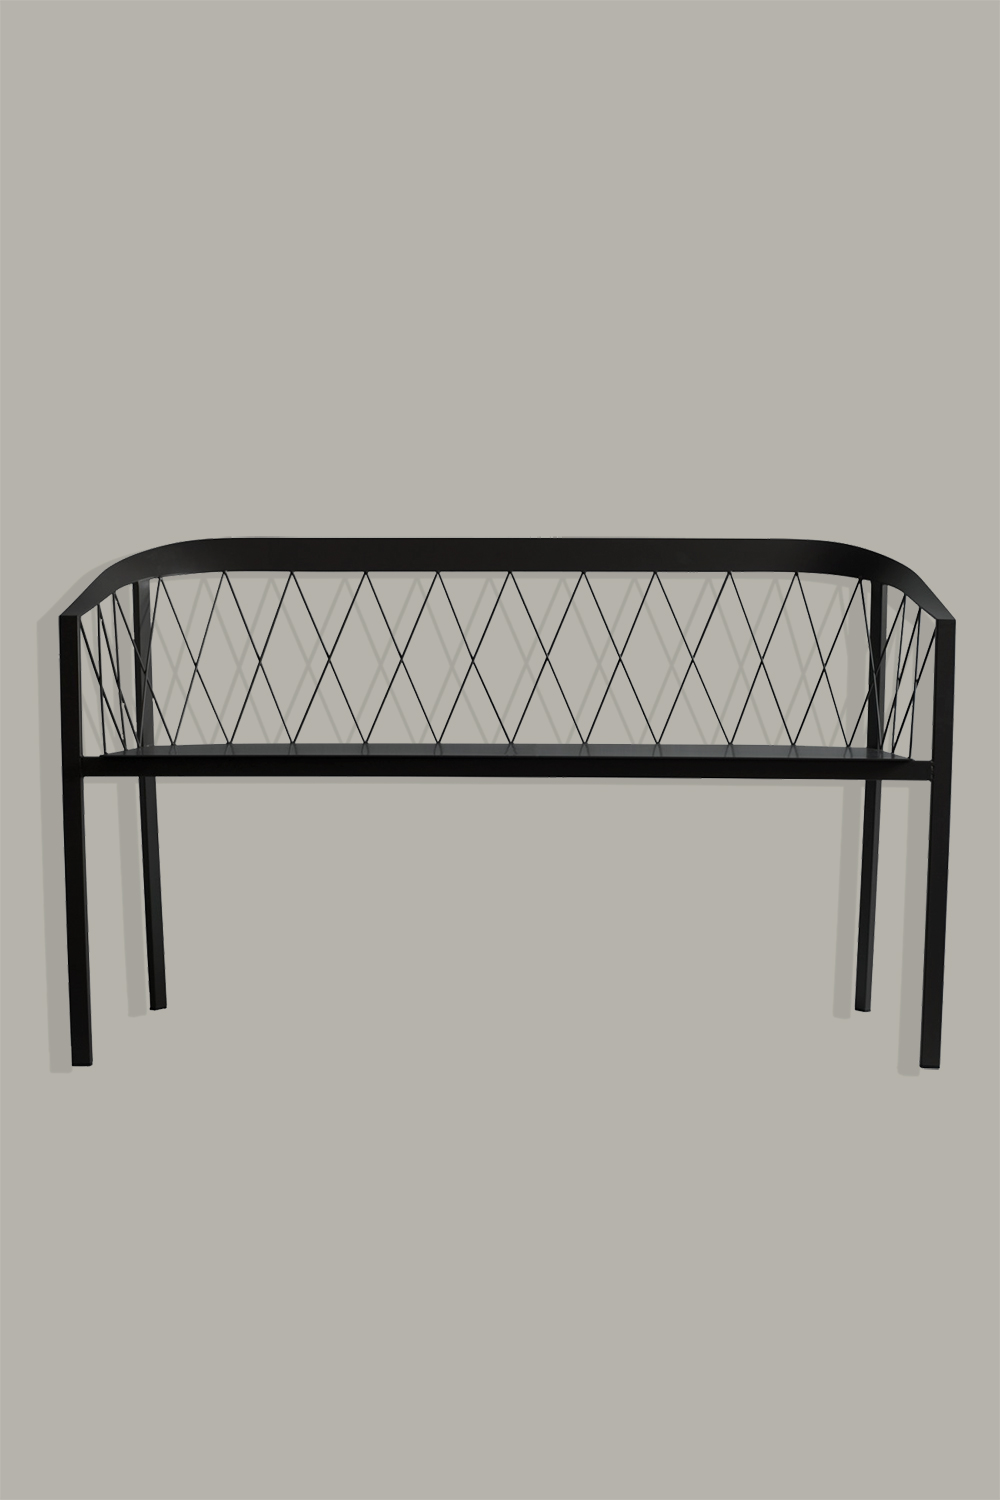 Our Bench Net Black